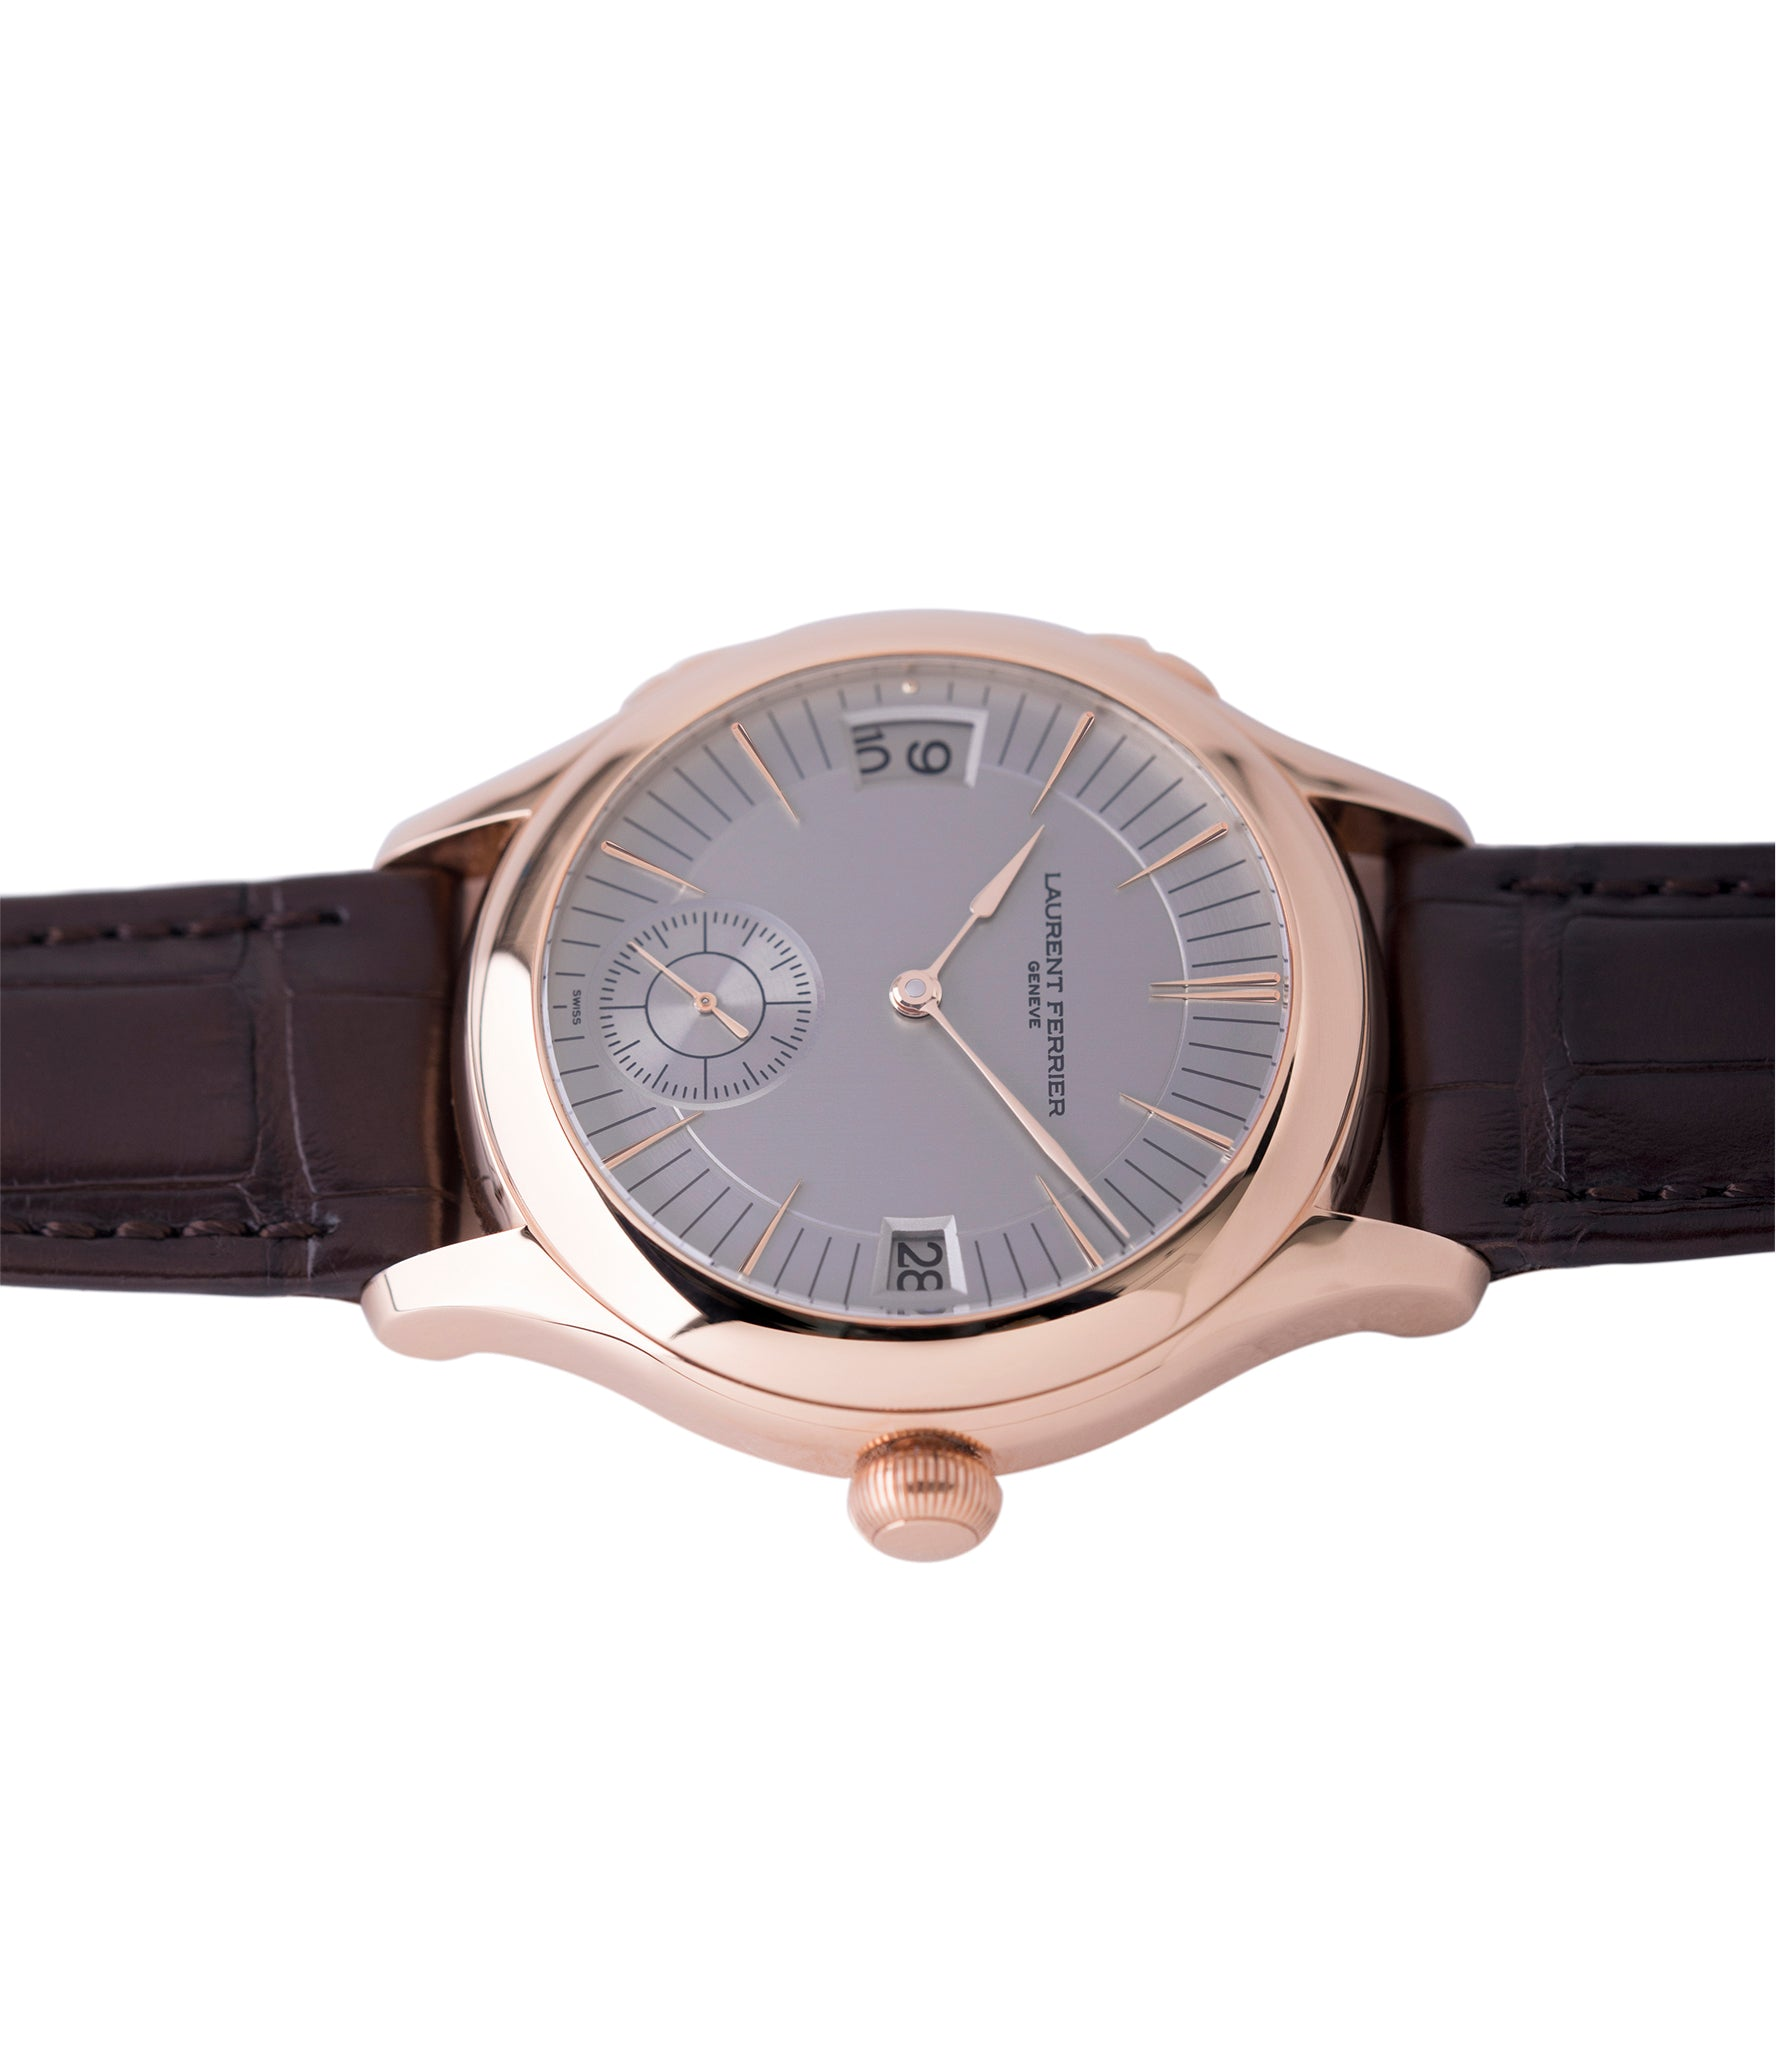 LF 230.02 Laurent Ferrier Galet Traveller Micro Rotor rose gold watch additional prototype dial for sale online at A Collected Man London UK approved reseller of preowned independent watchmakers